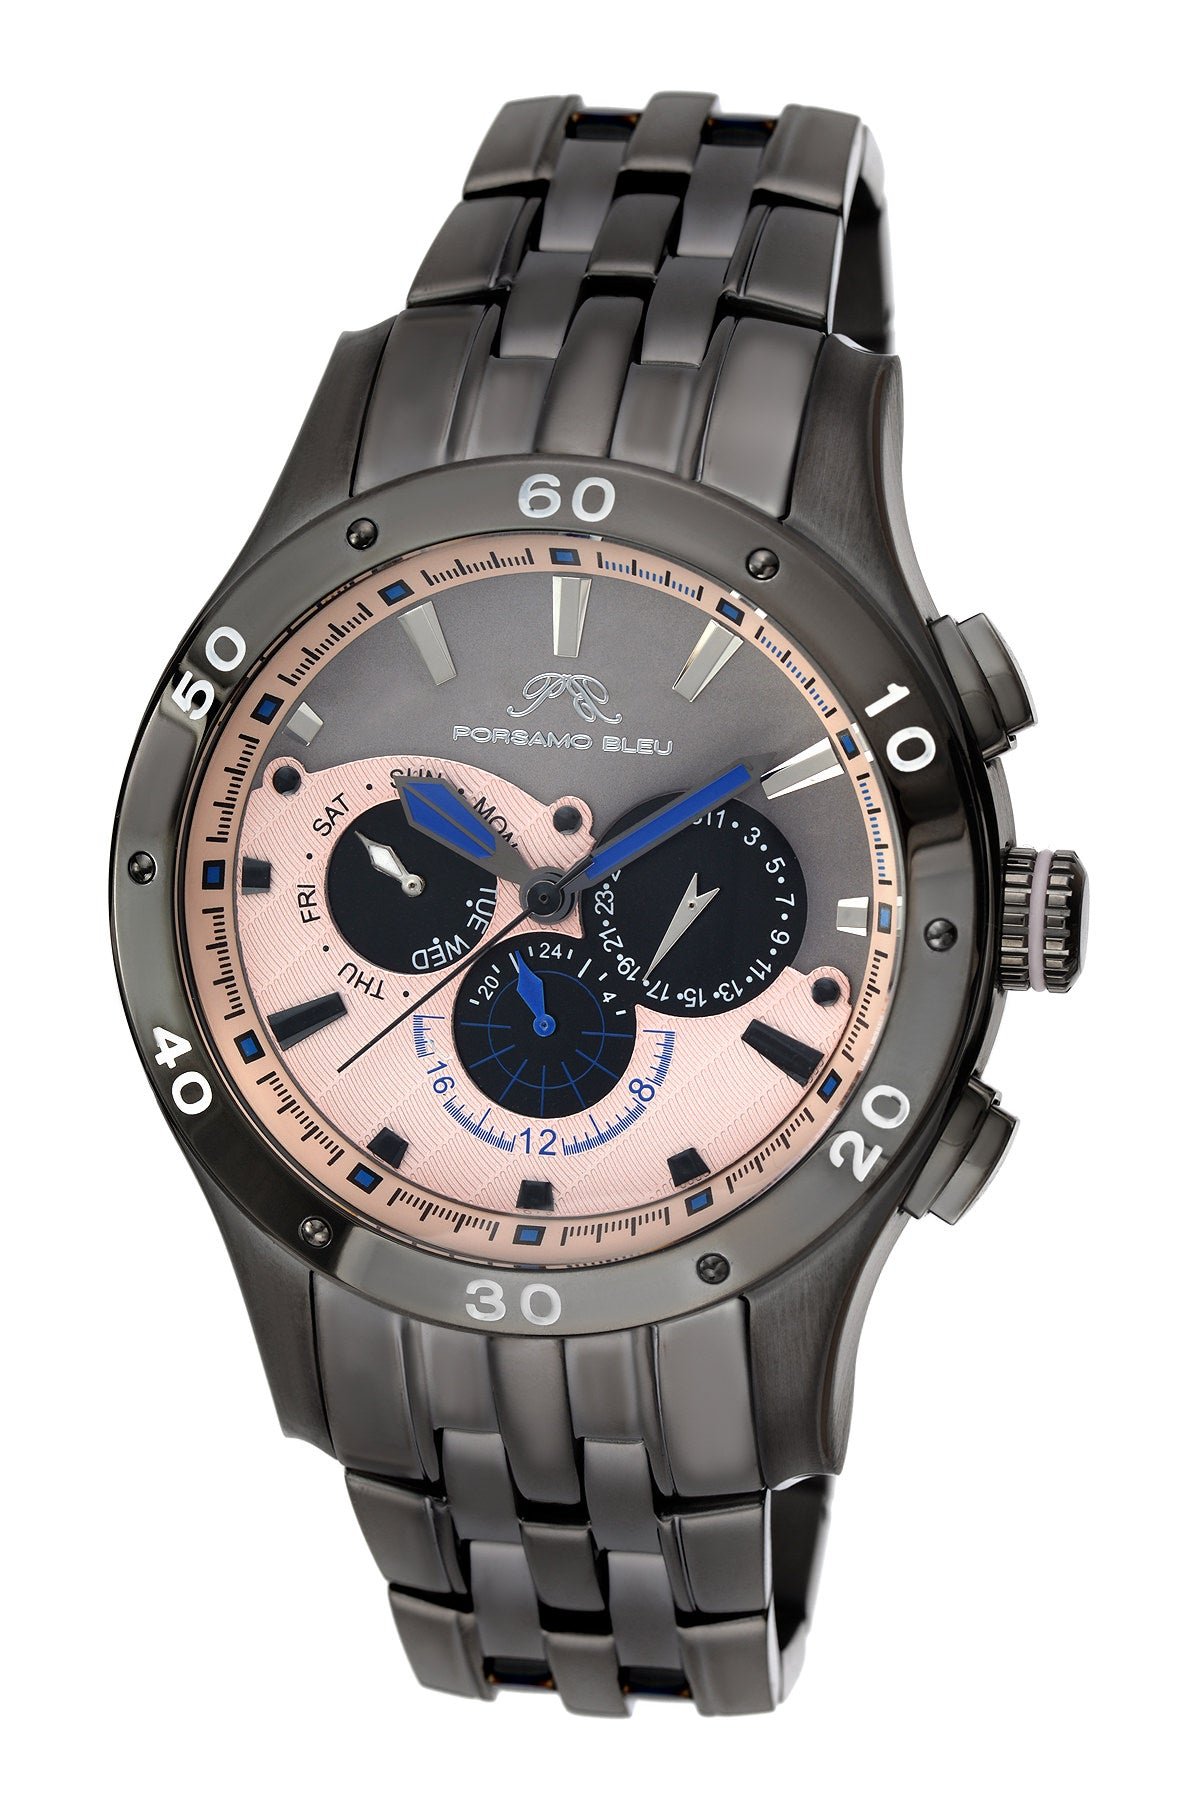 Porsamo Bleu, Andre luxury men's stainless steel watch, gunmetal, rose 222DANS